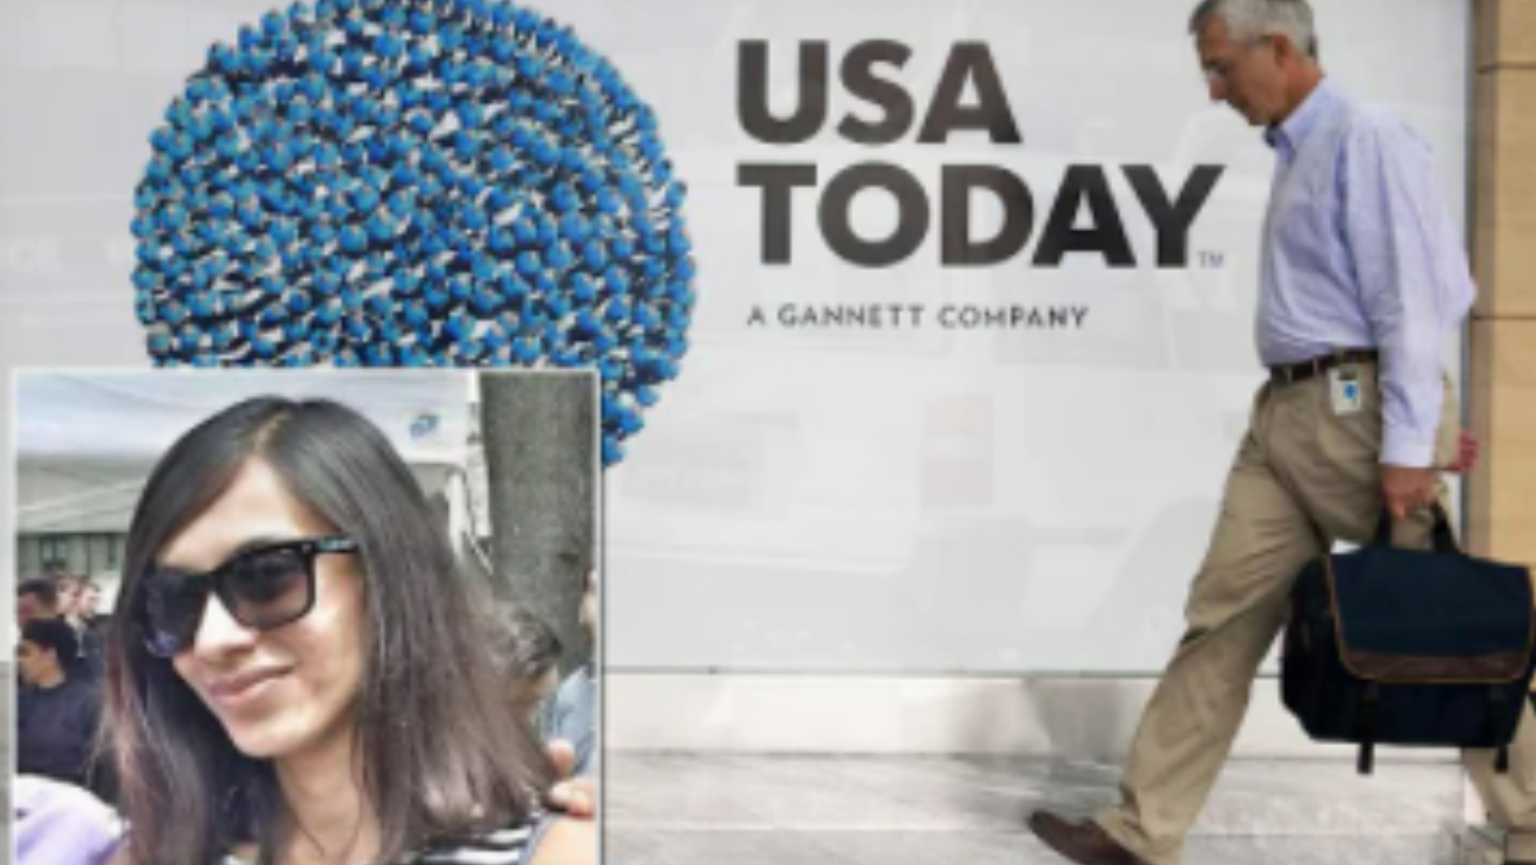 USA Today 'race and inclusion' editor fired for prematurely saying Boulder shooter was white (PS - she was wrong)